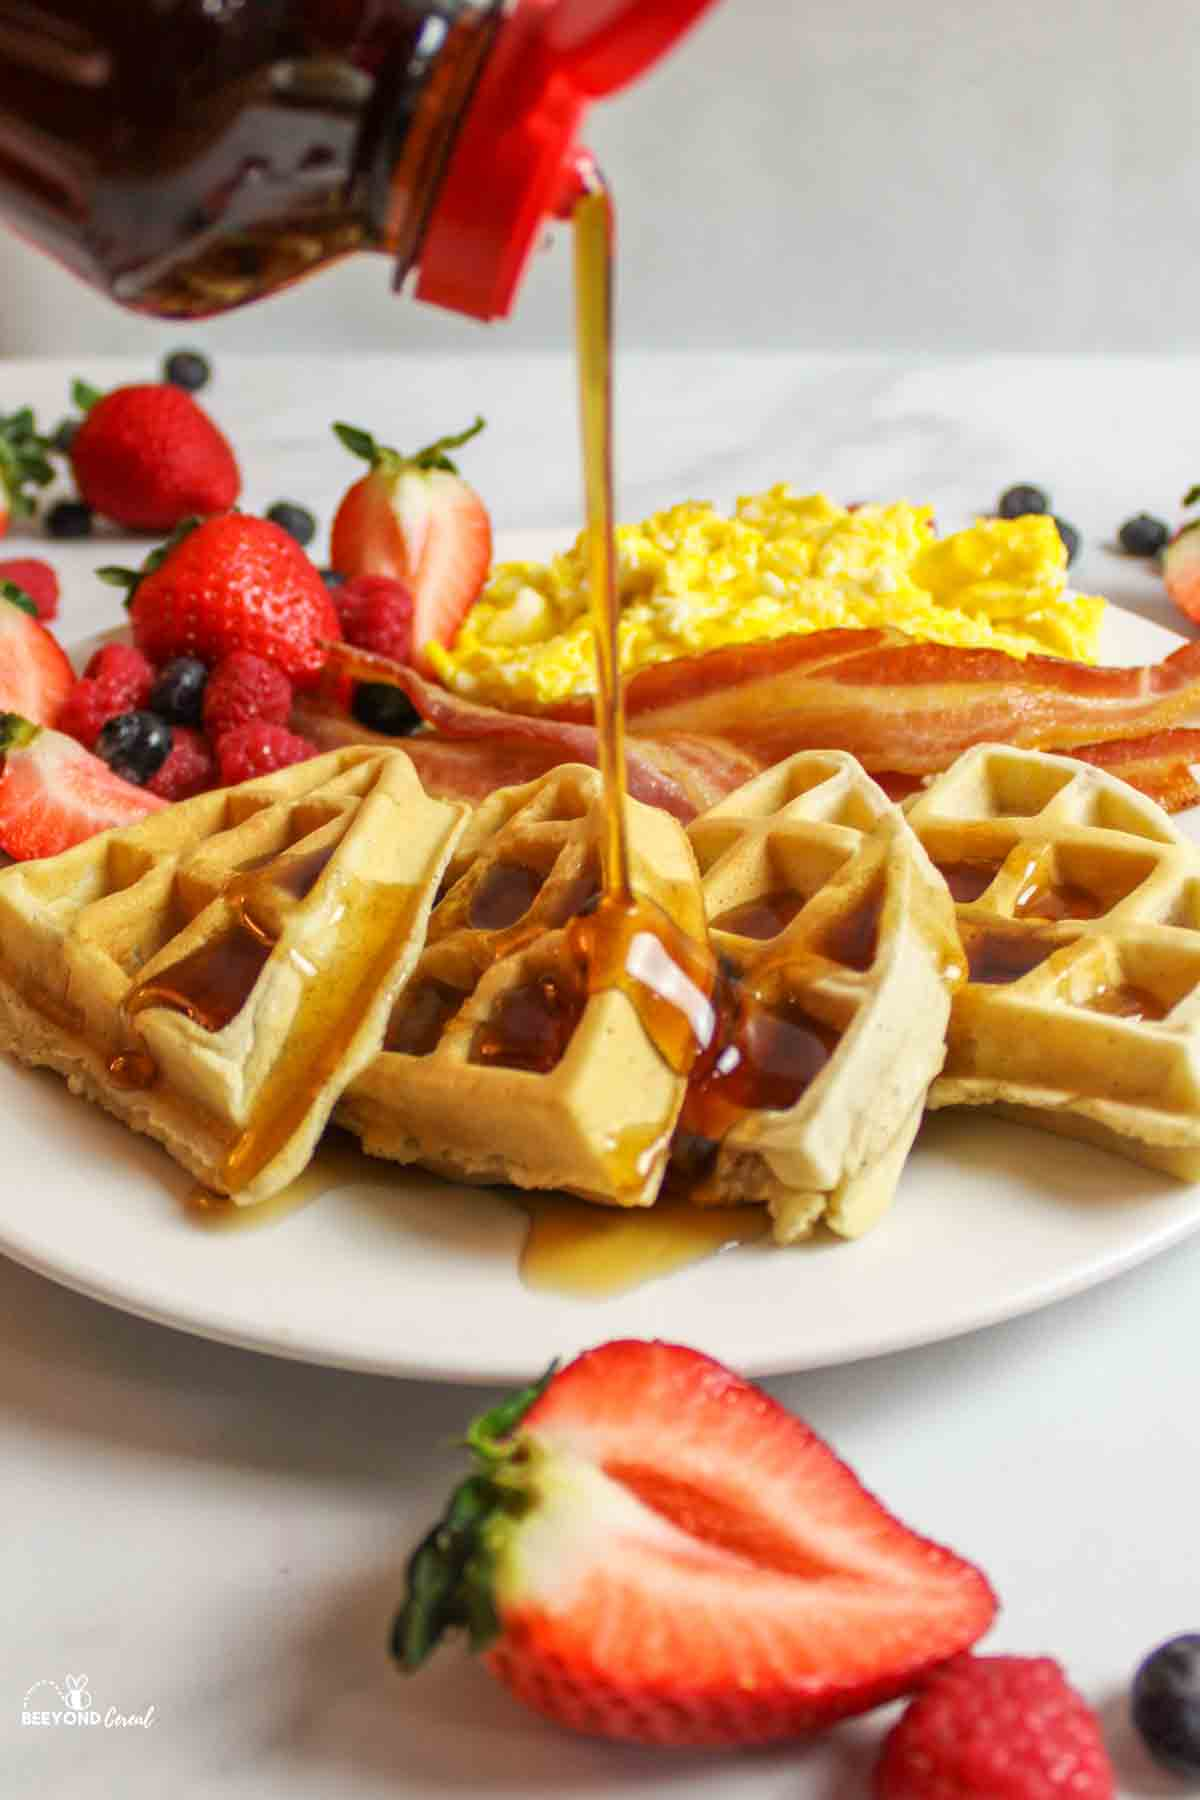 pouring syrup on a waffle with fresh berries all around